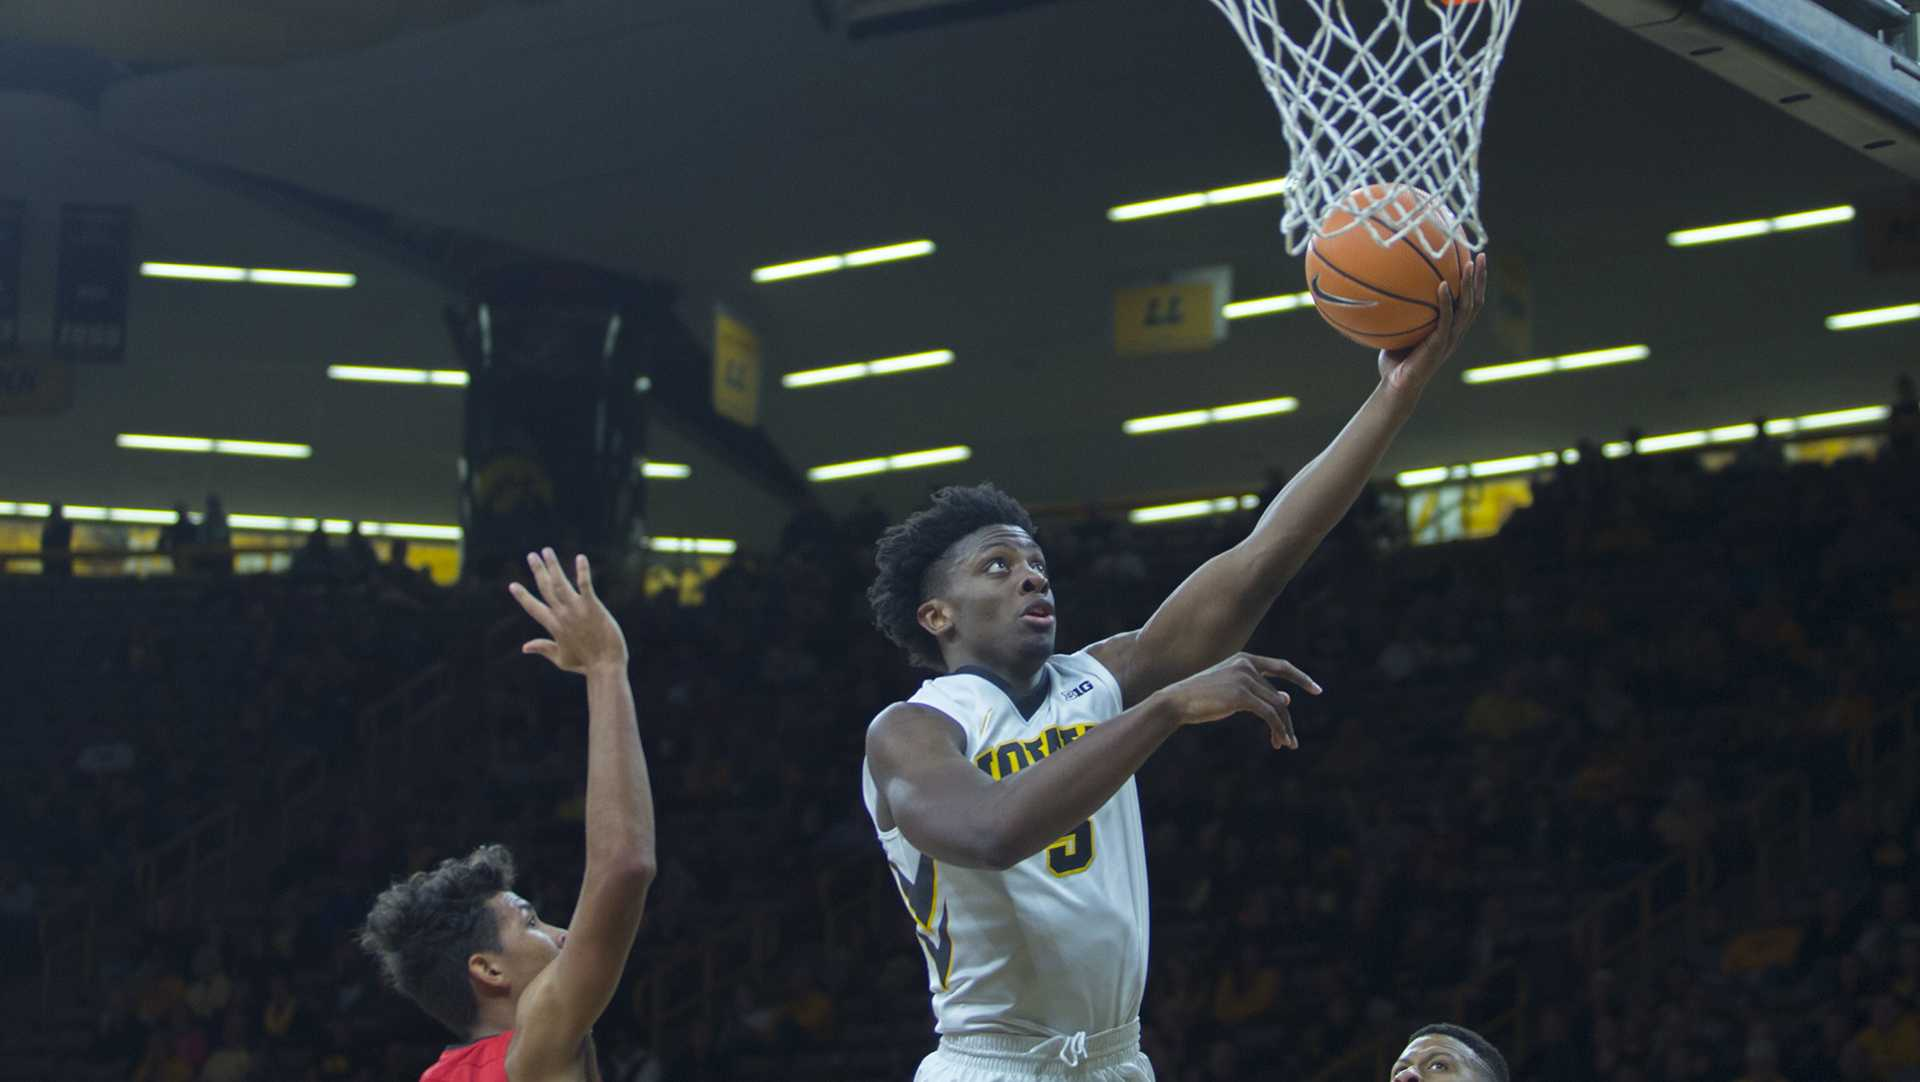 Iowa forward Tyler Cook shoots a lay-up during the Iowa/Belmont Abbey basketball game in Carver-Hawkeye Arena on Thursday, Nov. 2, 2017. The Hawkeyes defeated the Crusaders, 96-64. (Lily Smith/The Daily Iowan)